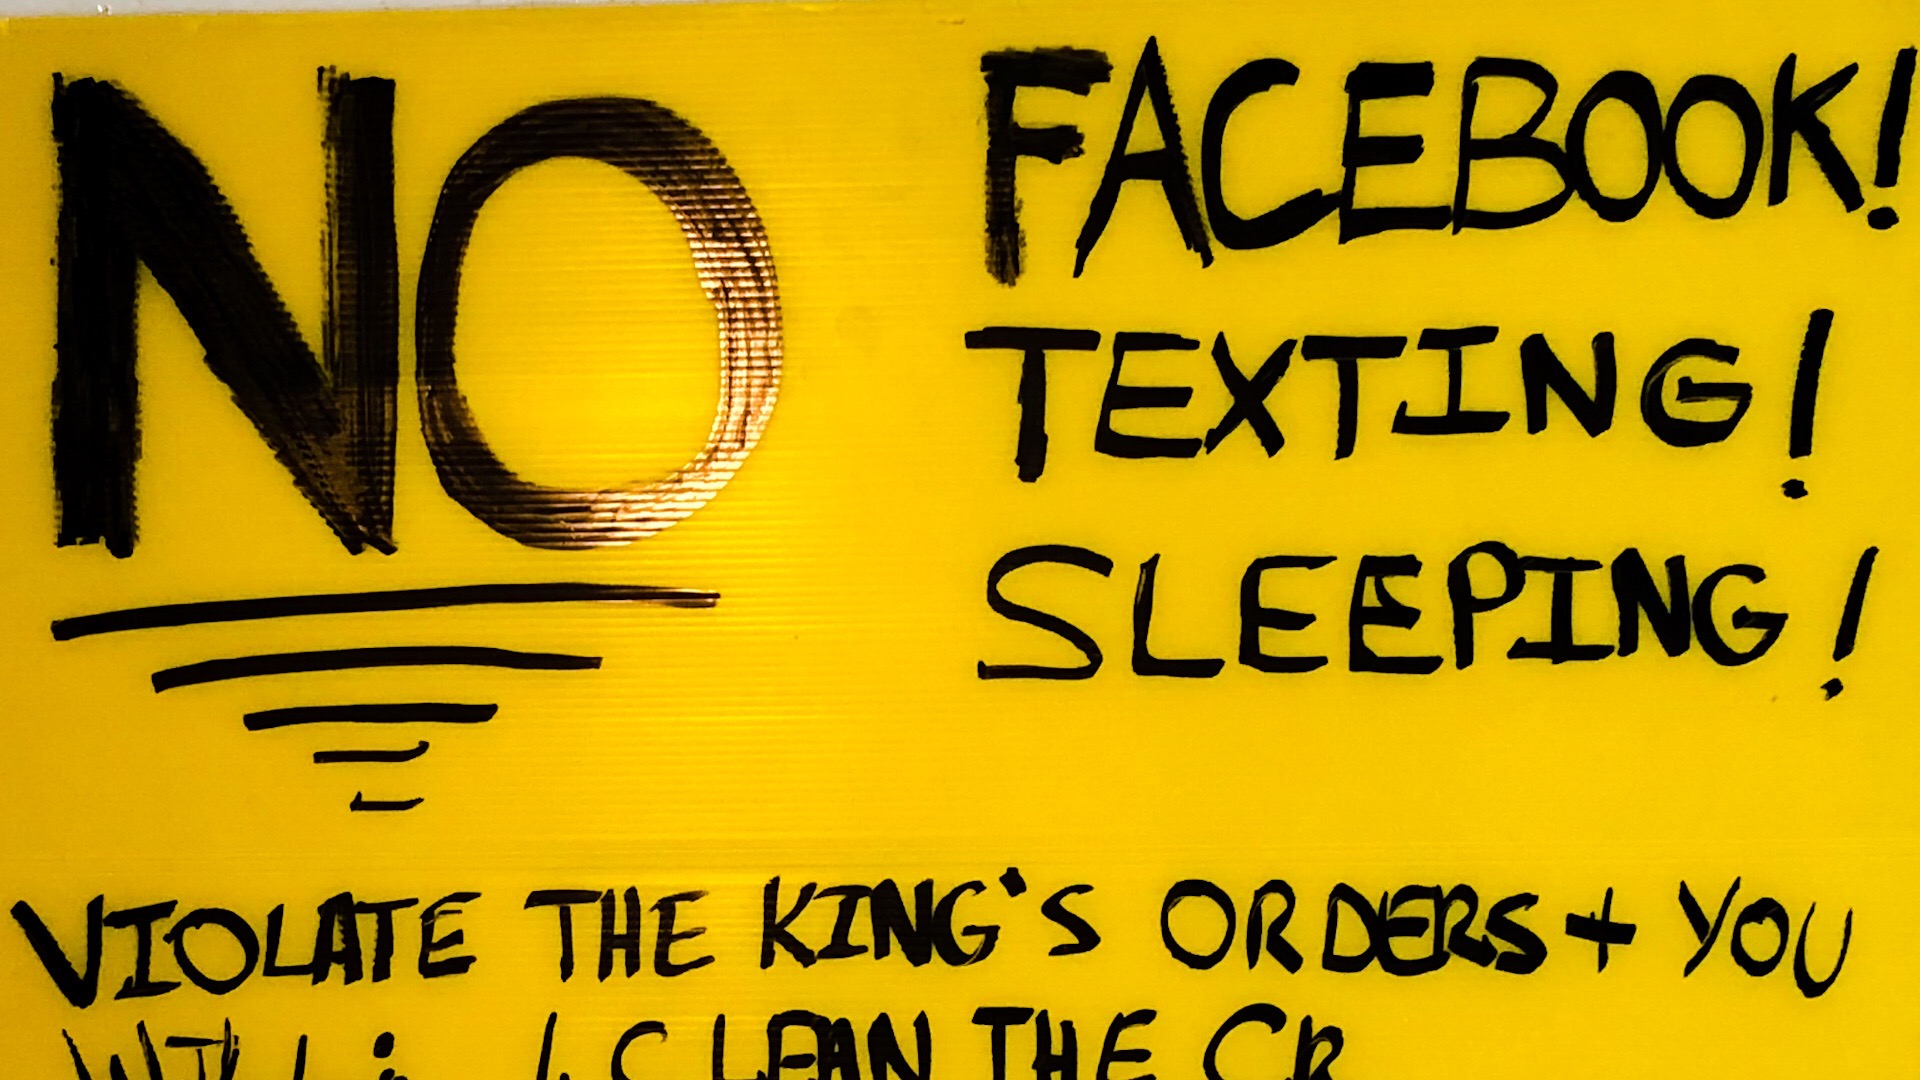 NO Facebook! NO Texting! NO Sleeping! - Had to Get Rid of the Zombies